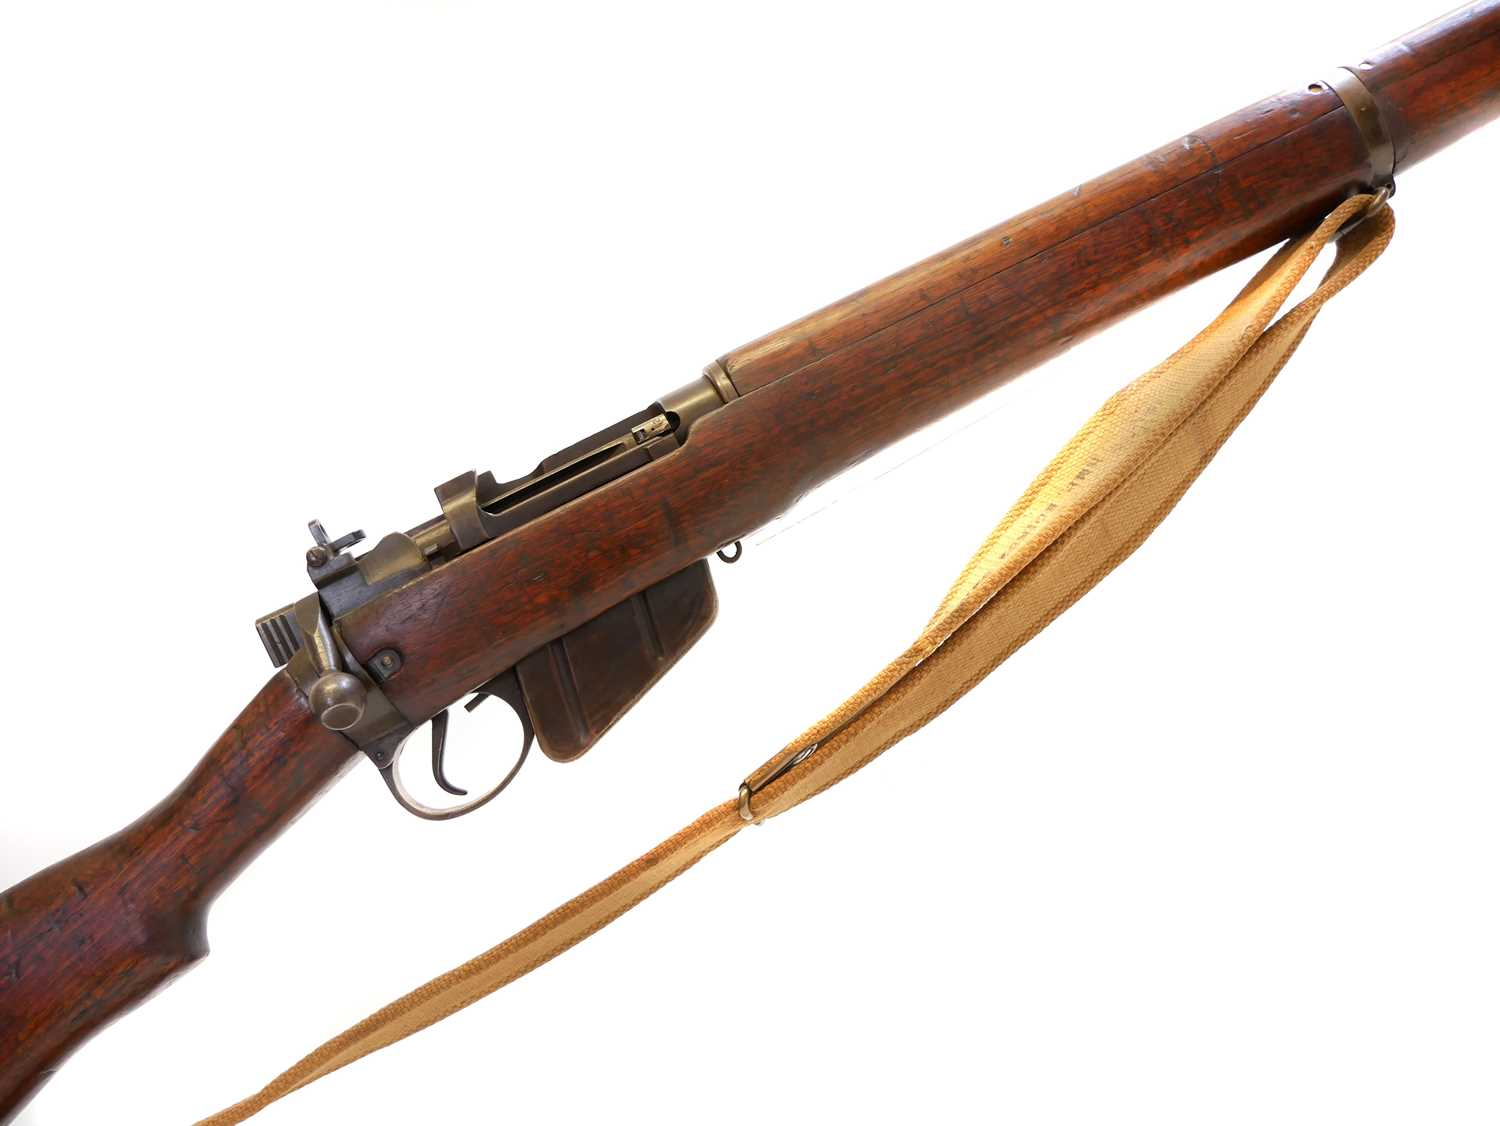 Lot Deactivated Lee Enfield No.4 .303 rifle